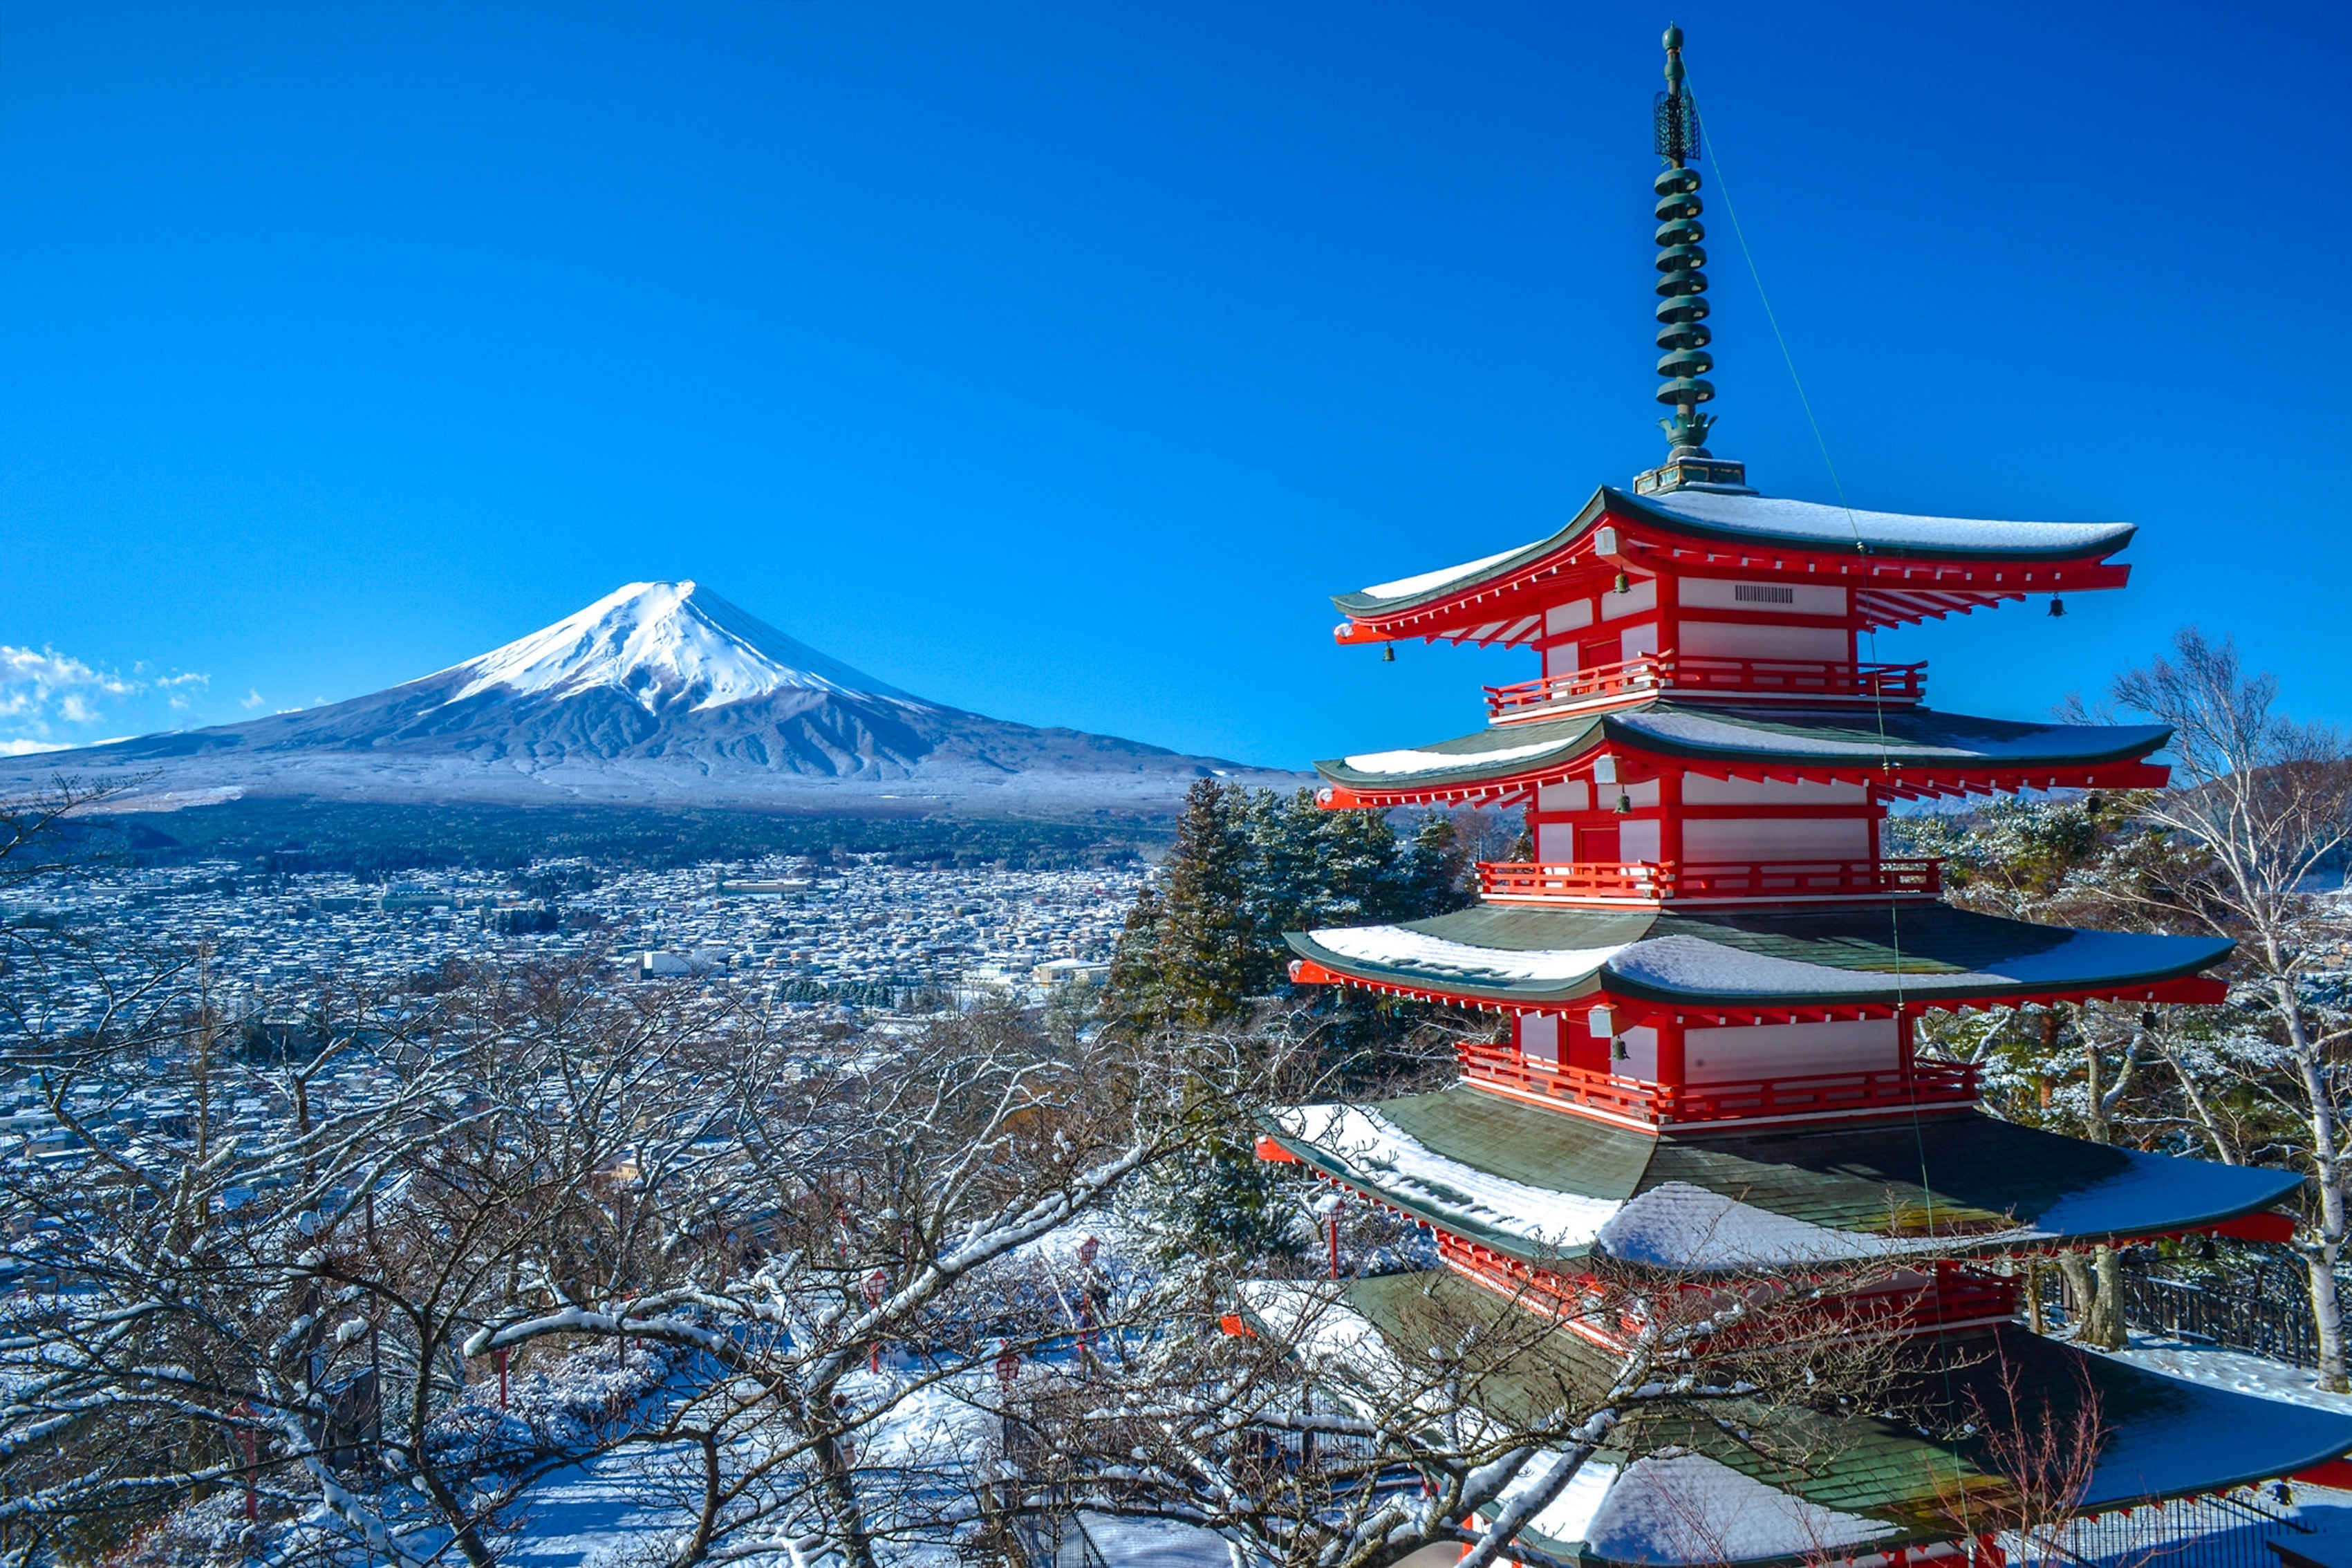 volcano Japan Fujiyoshida winter Mount Fuji panorama Japan Chureito Pagoda SL12 home wall modern art decor wood frame poster